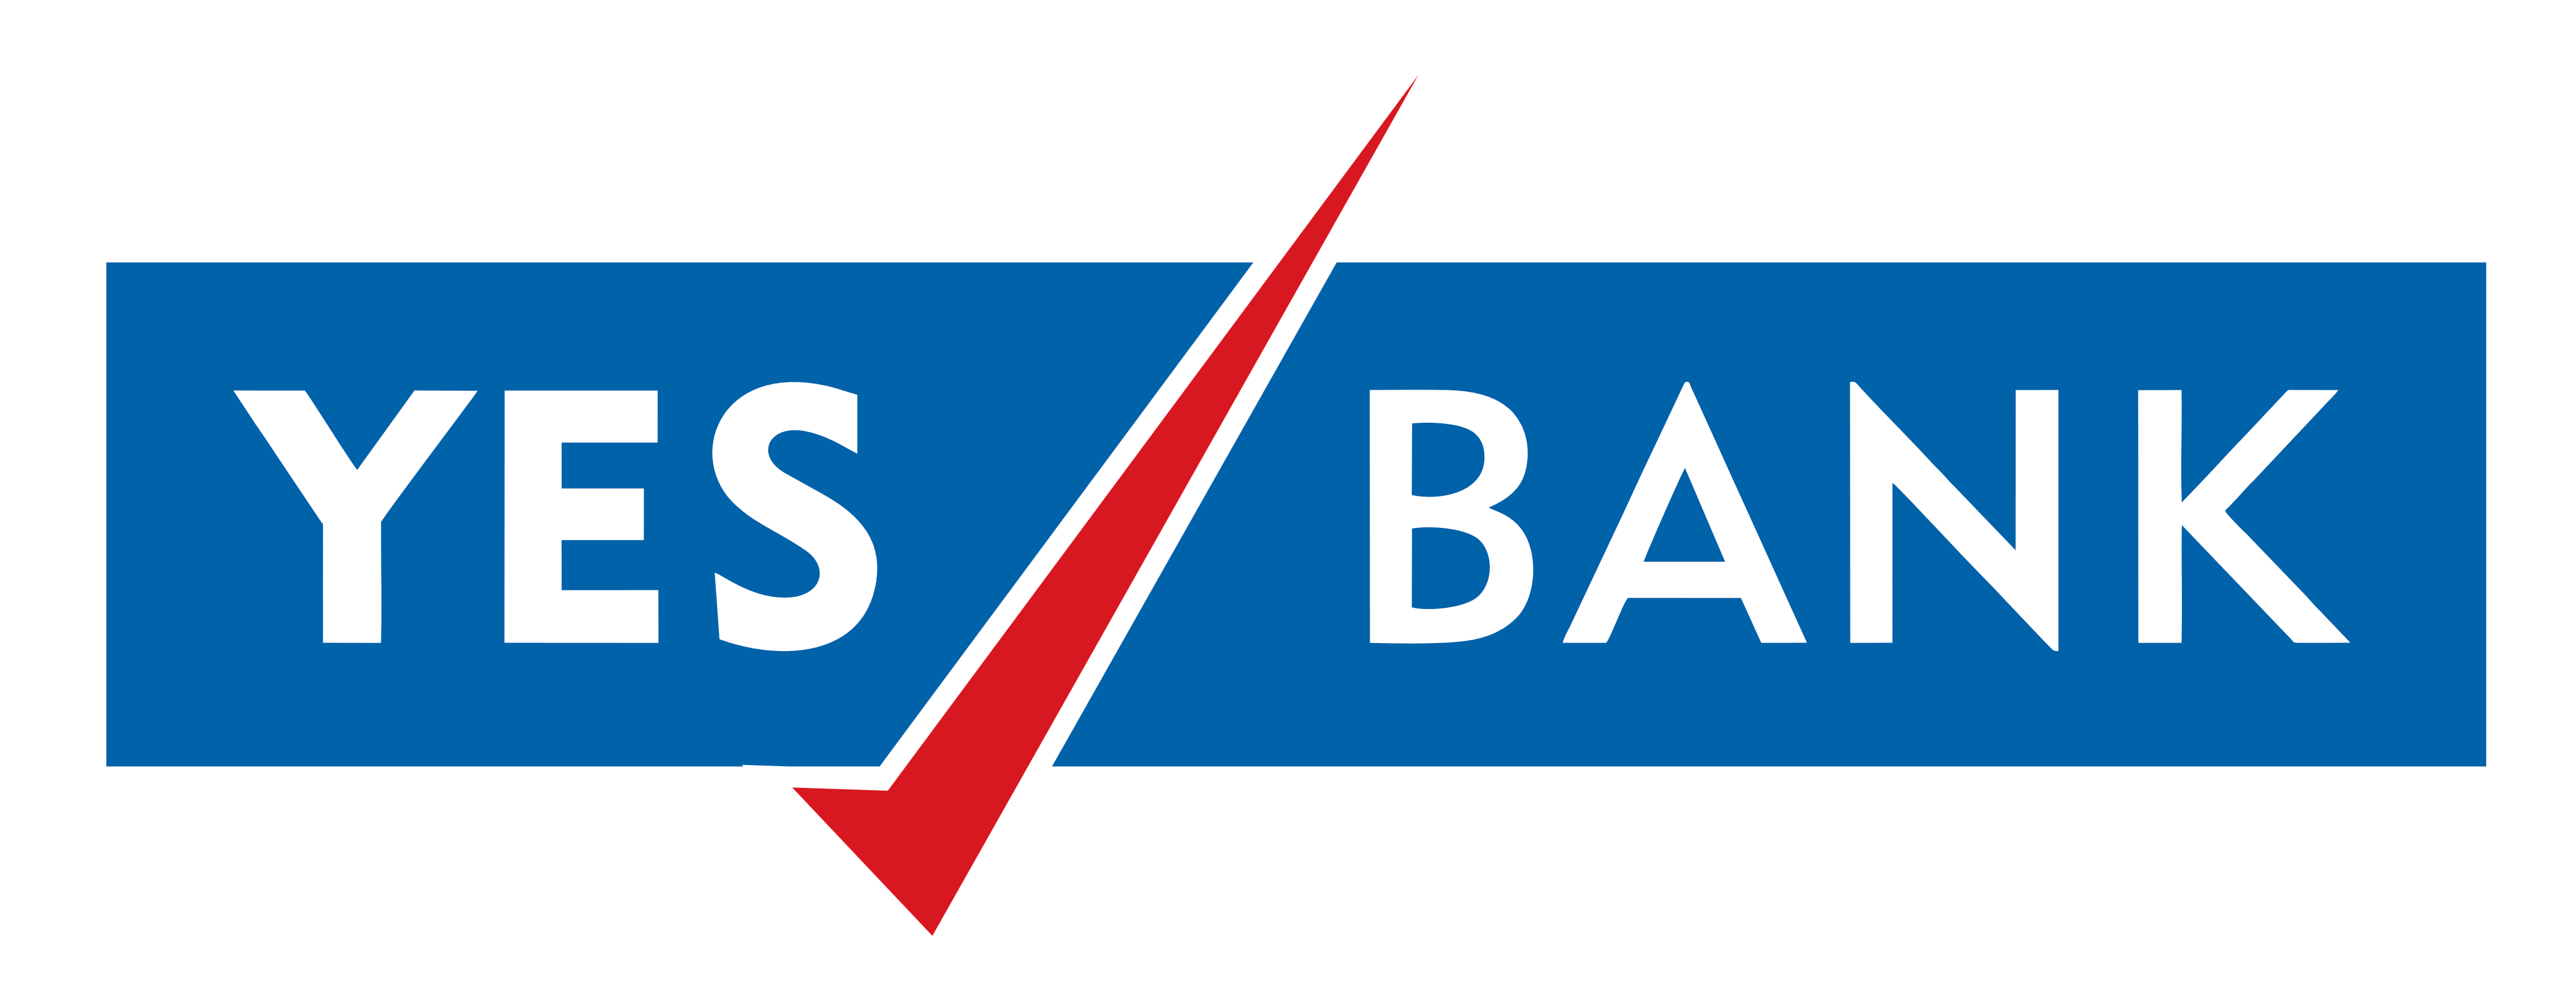 Yes Bank Logos Download